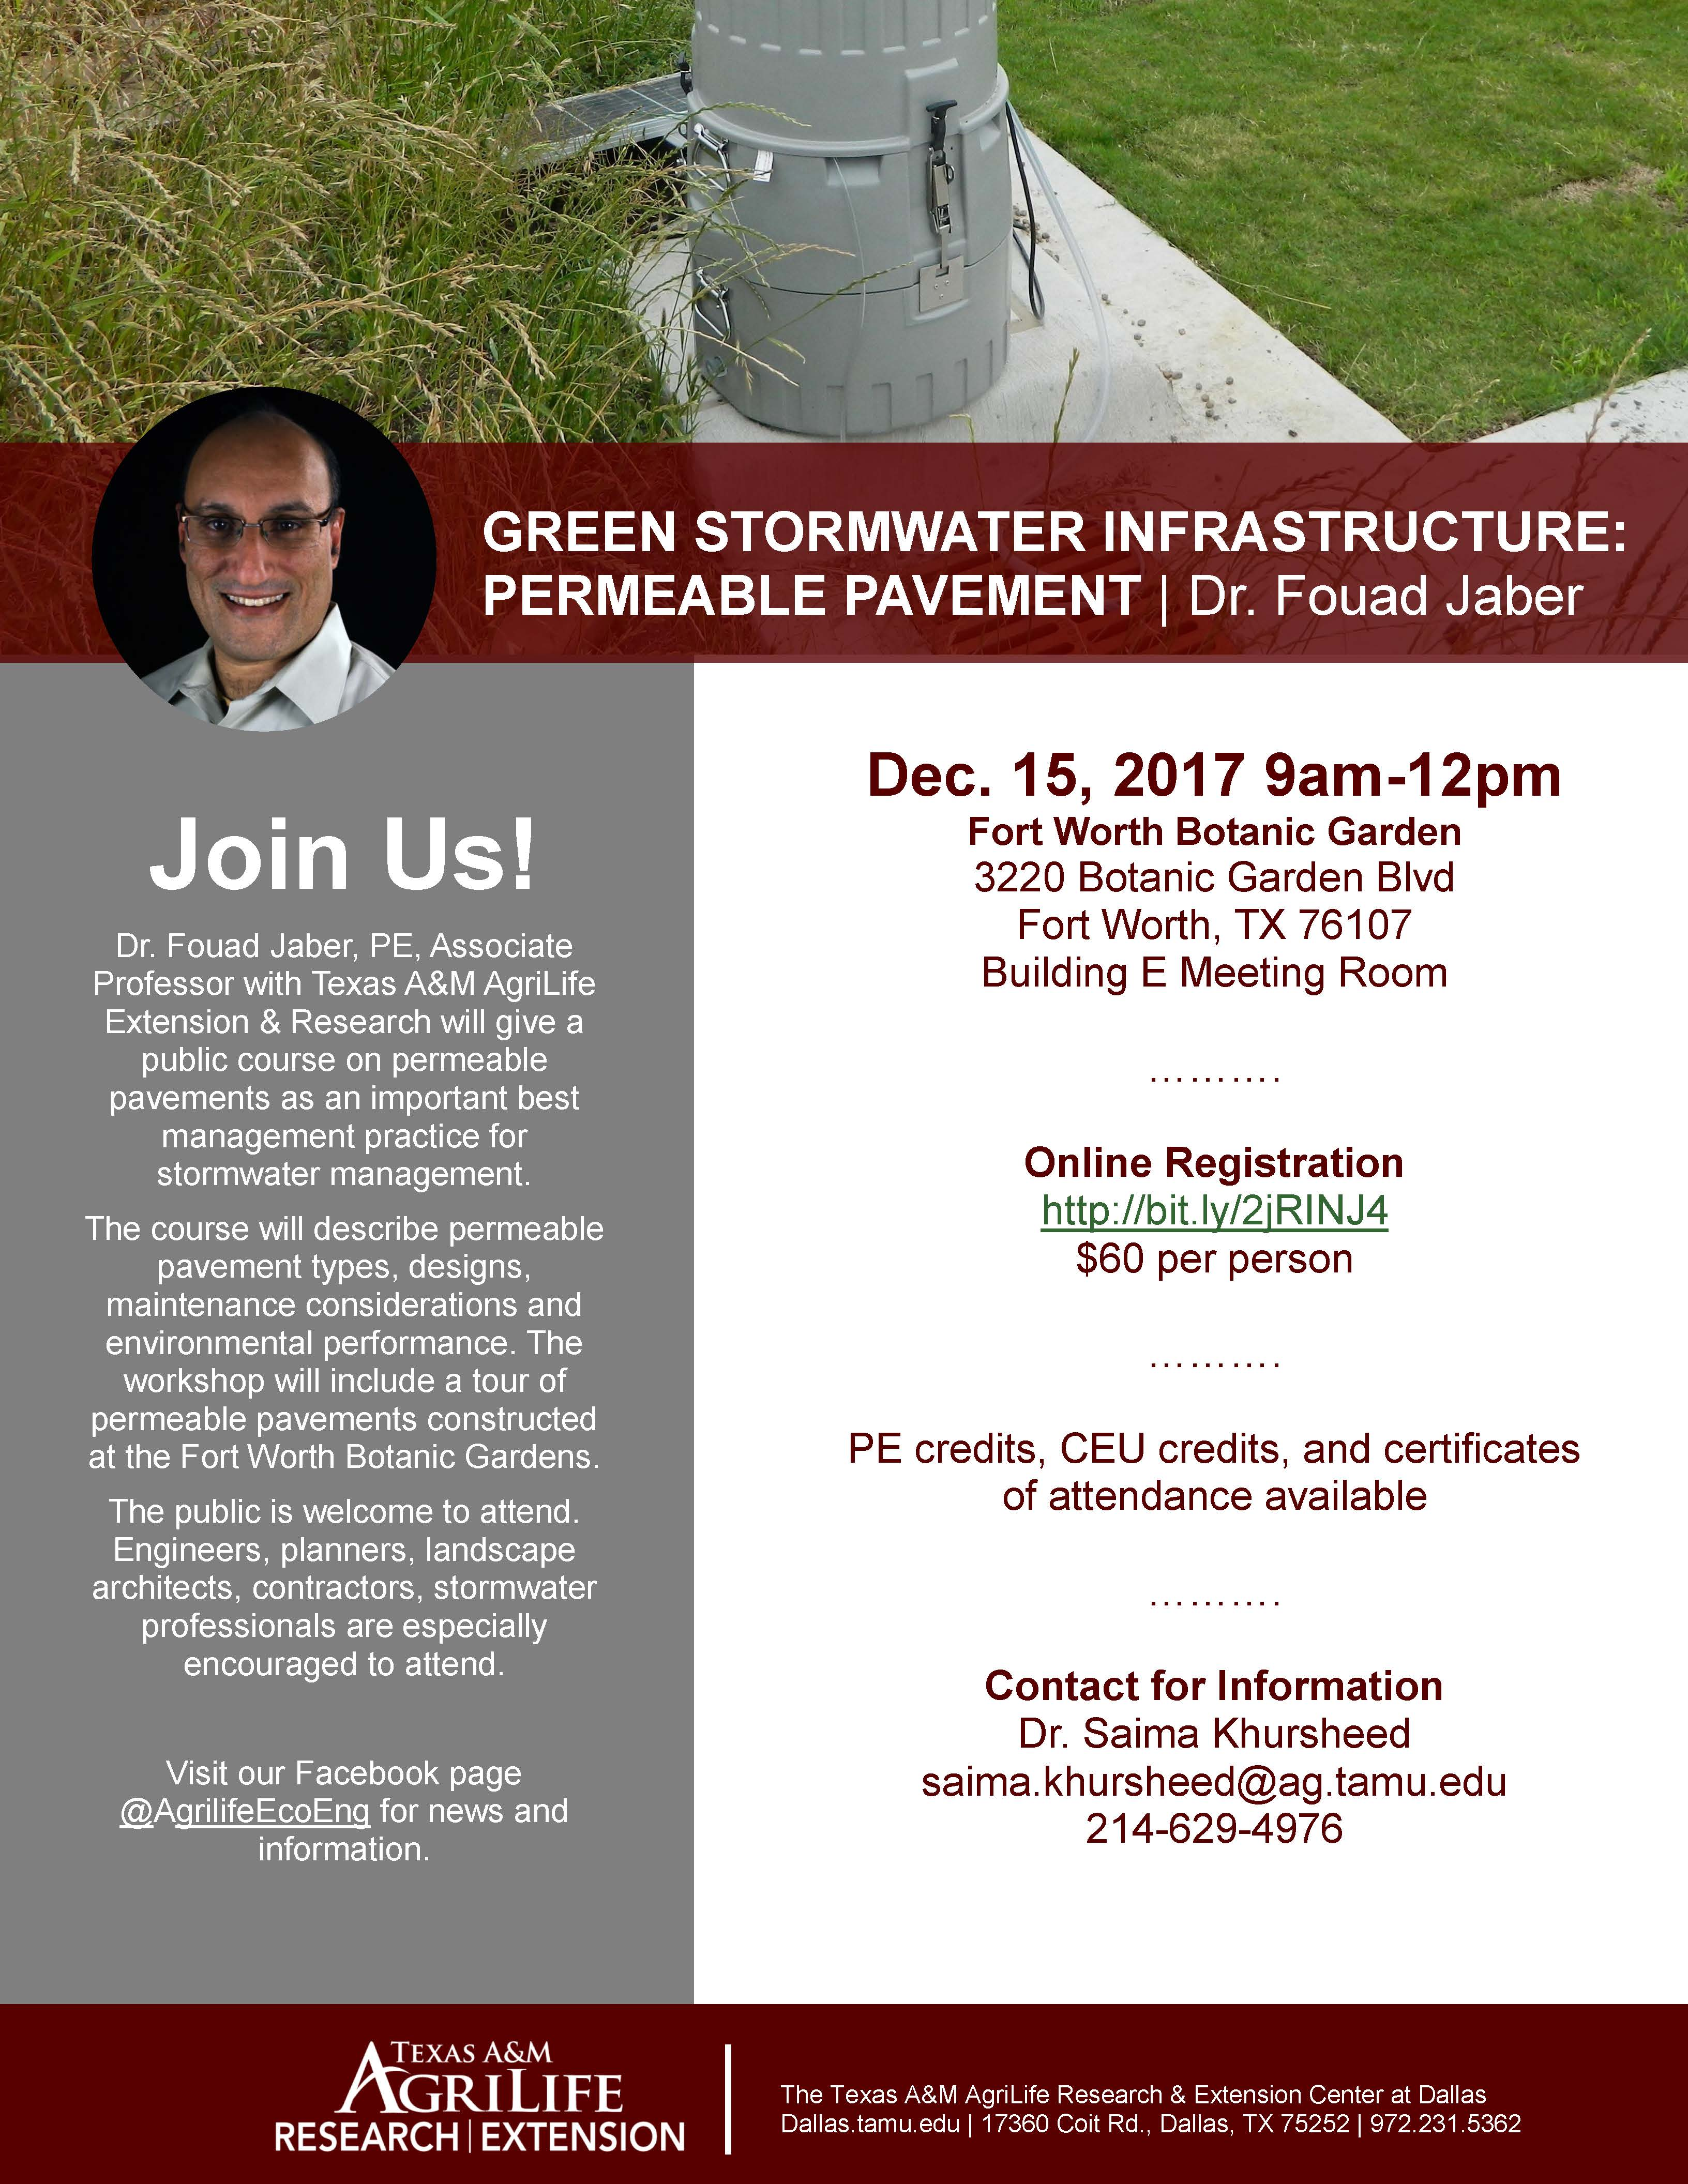 Flyer for permeable pavement course